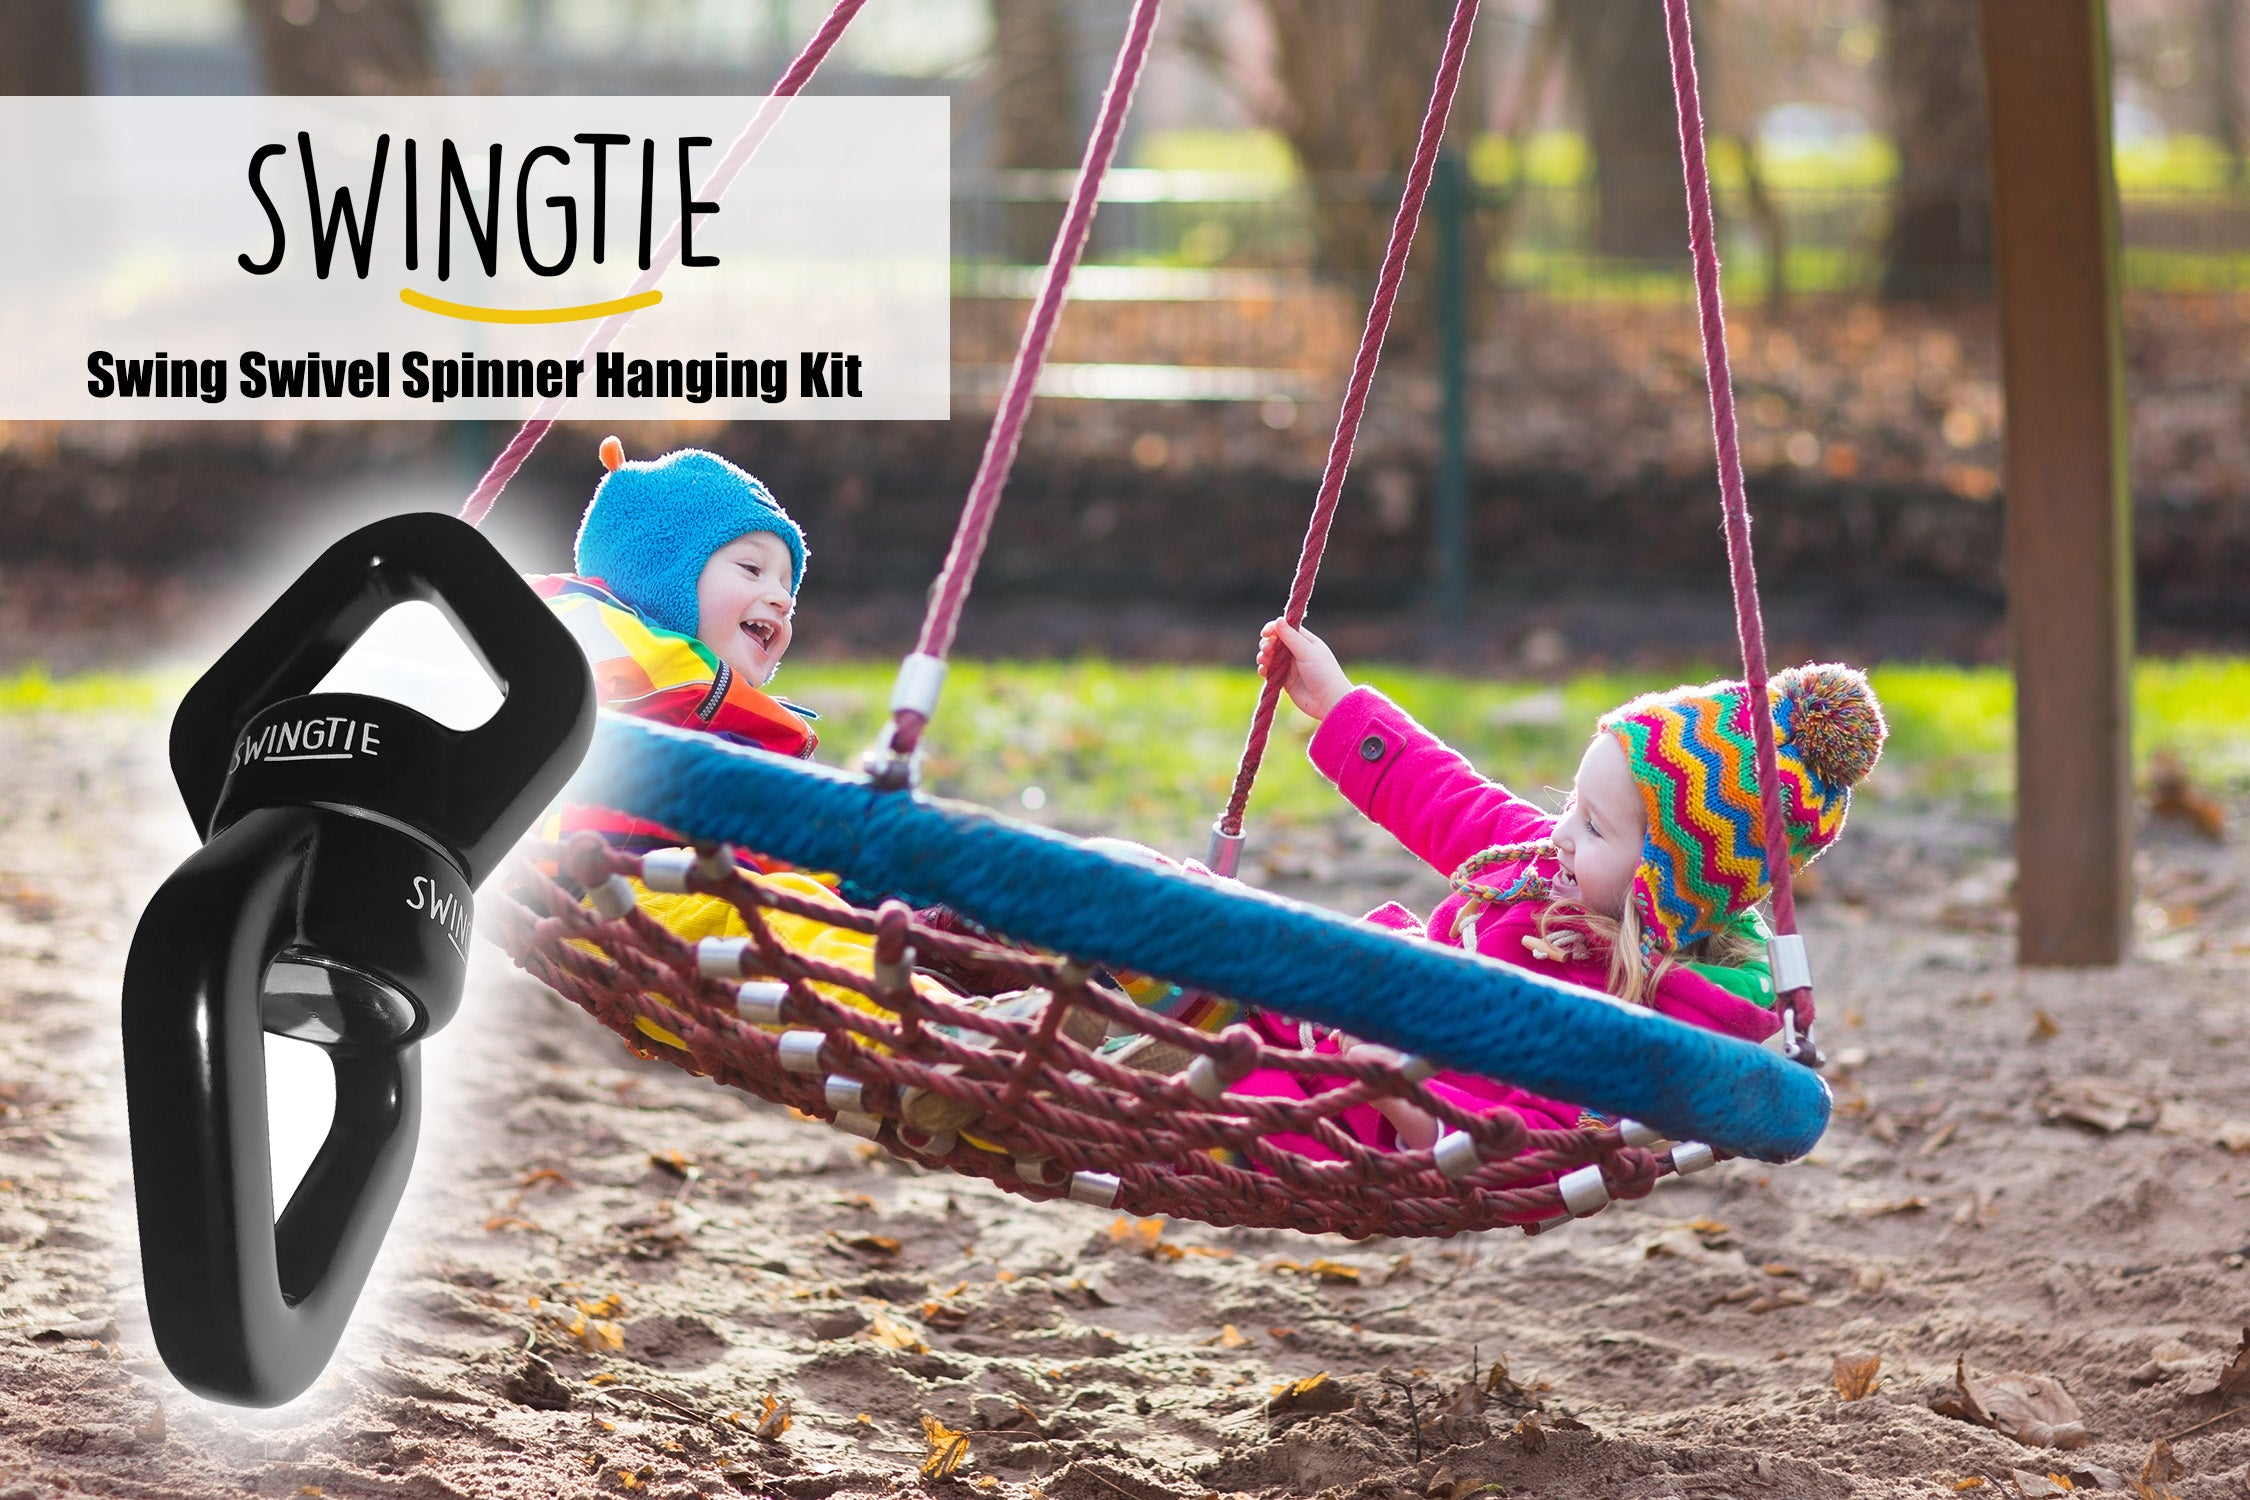 SwingTie Swivel Spinner